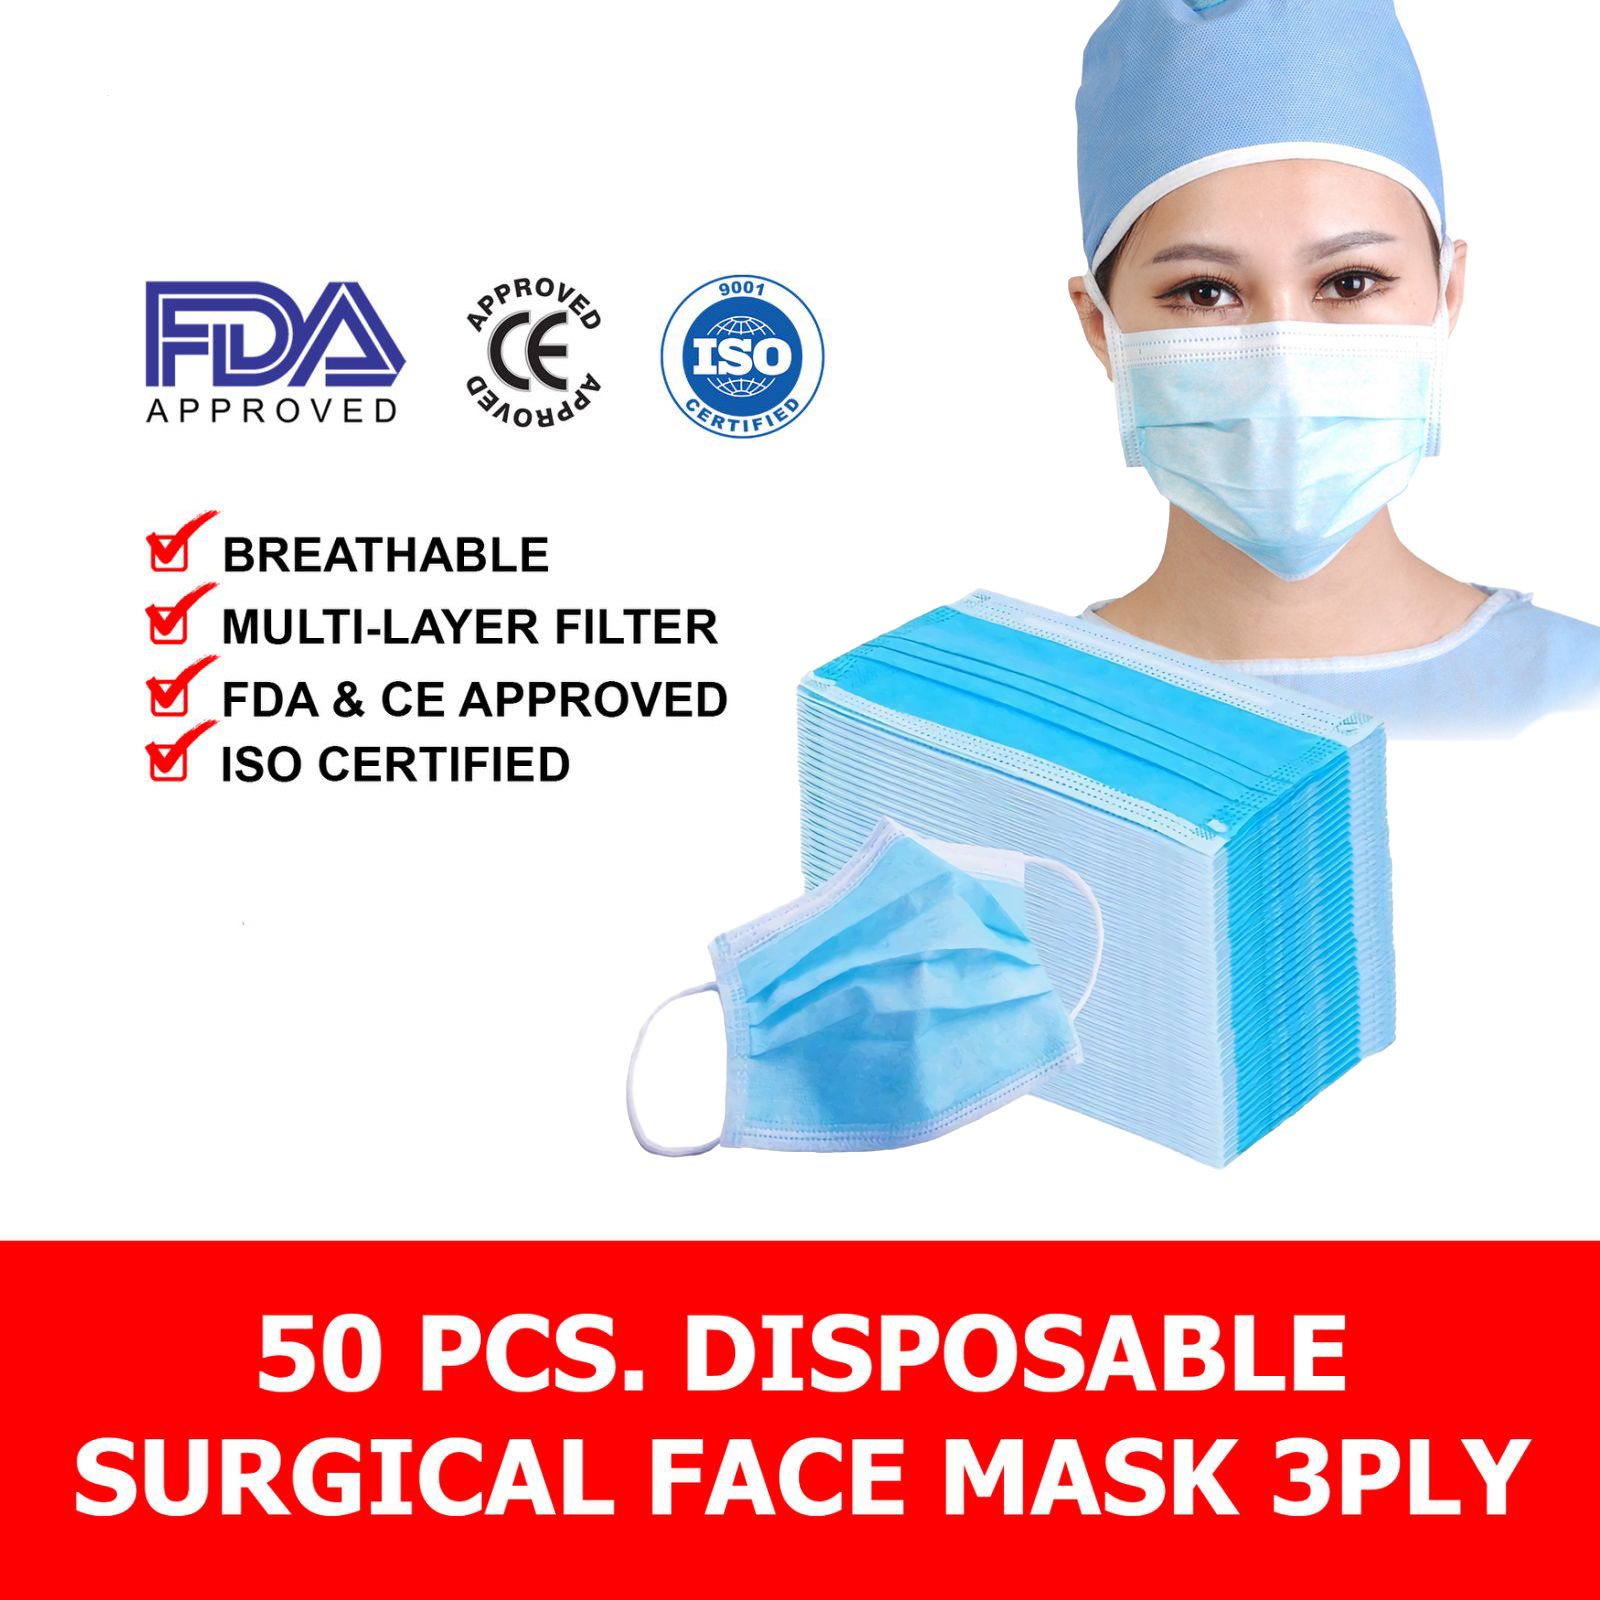 Image of NATURE'S RAIN FACE MASK 3PLY MEDICAL SURGICAL 1 BOX 50PCS